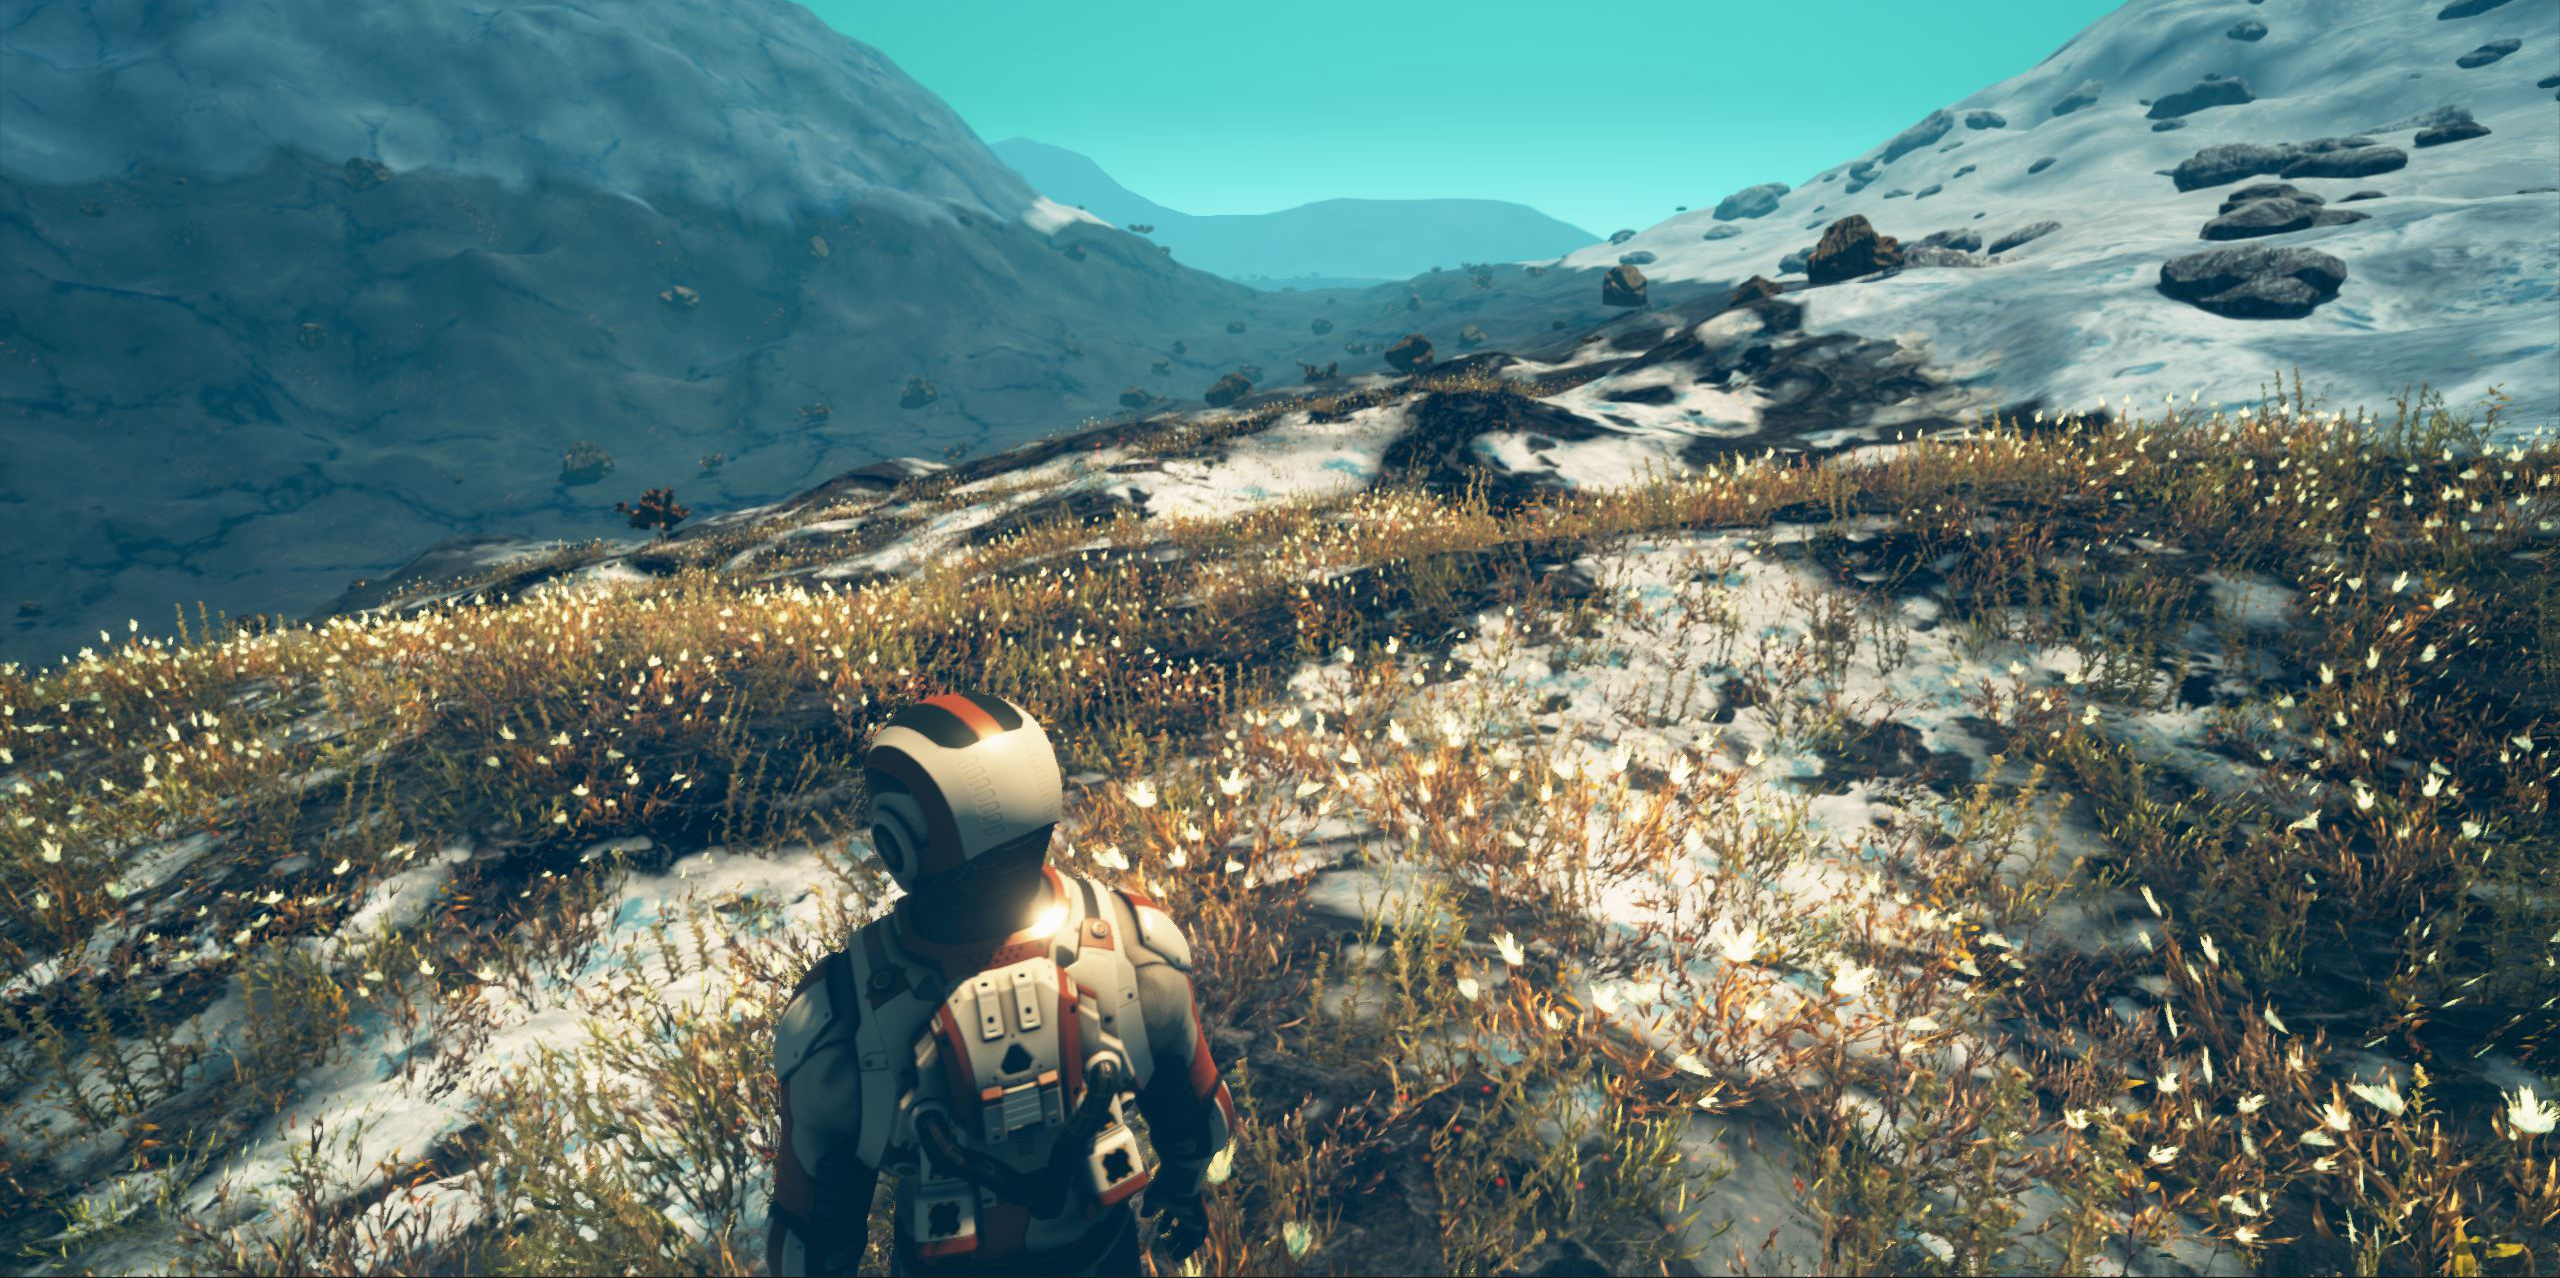 Tundra Meets the Arctic in Planet Nomads